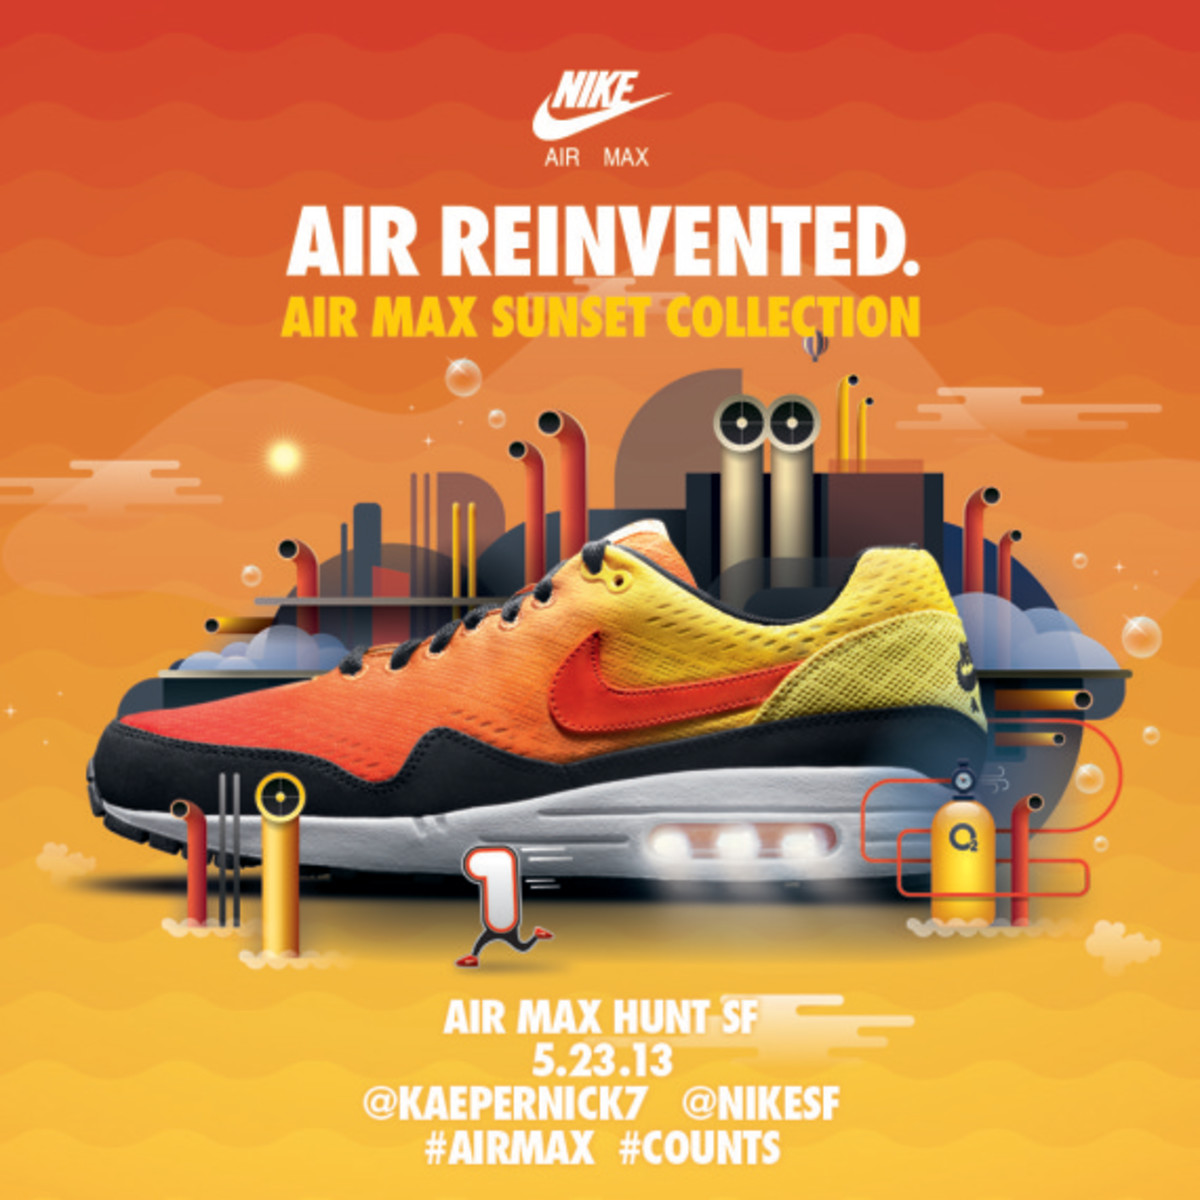 nike-air-max-hunt-in-sf-and-nyc-07